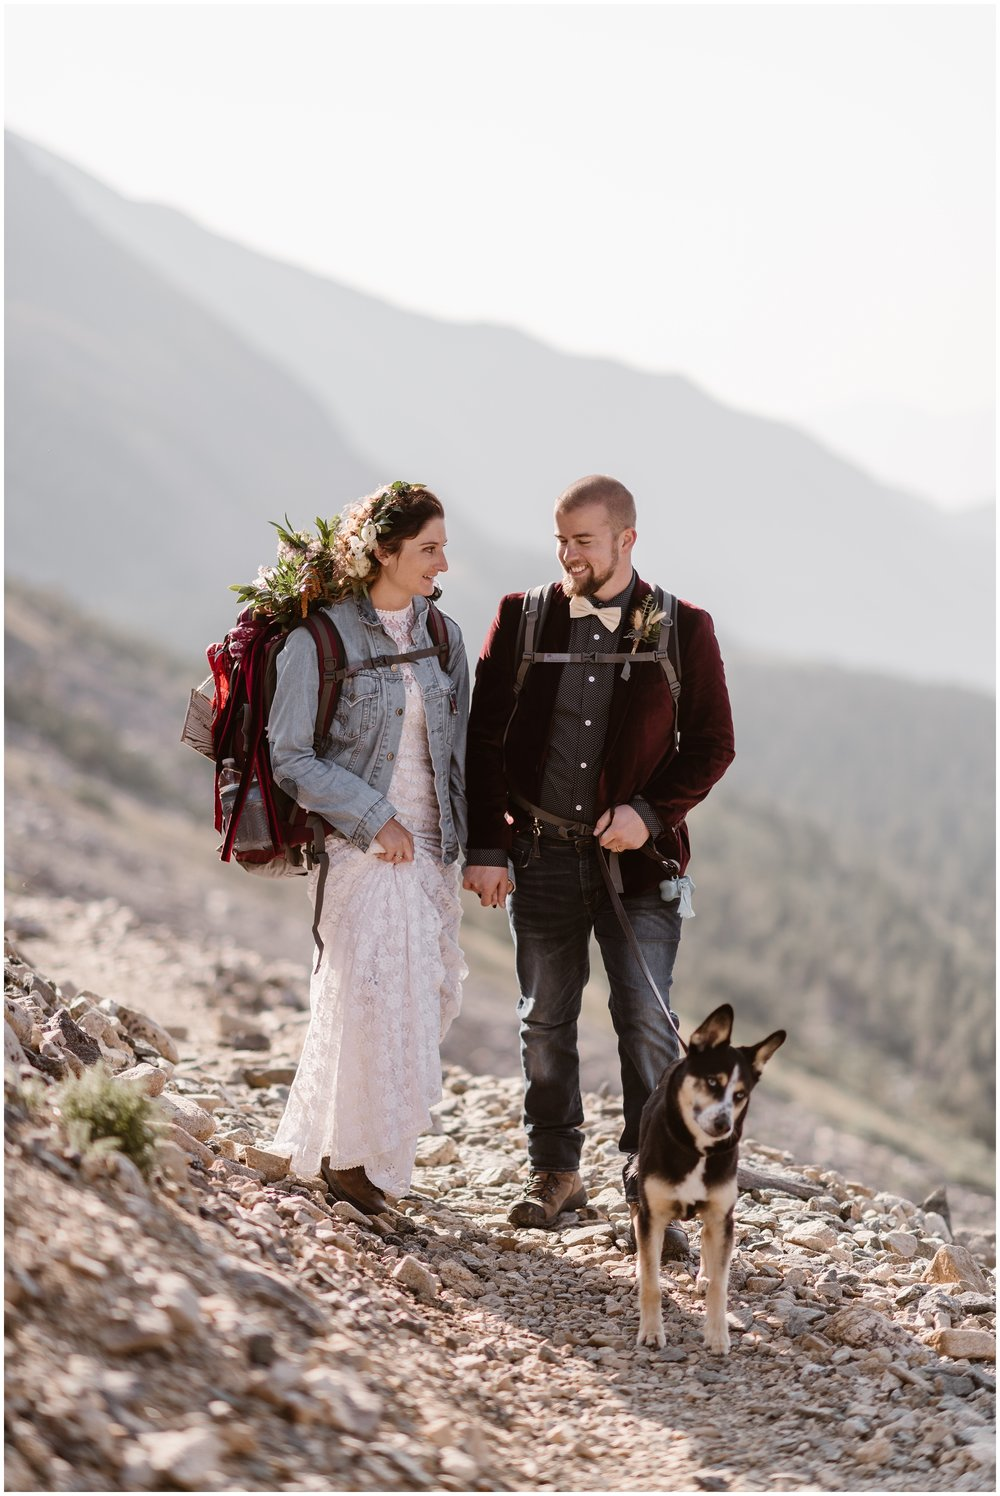 A bride and groom hike down a rocky trail with their adorable puppy. Both in their wedding attire, they're equipped with hiking gear—backpacks, hiking boots, and more. Hiking as part of your elopement wedding is one of the best elopement ideas.